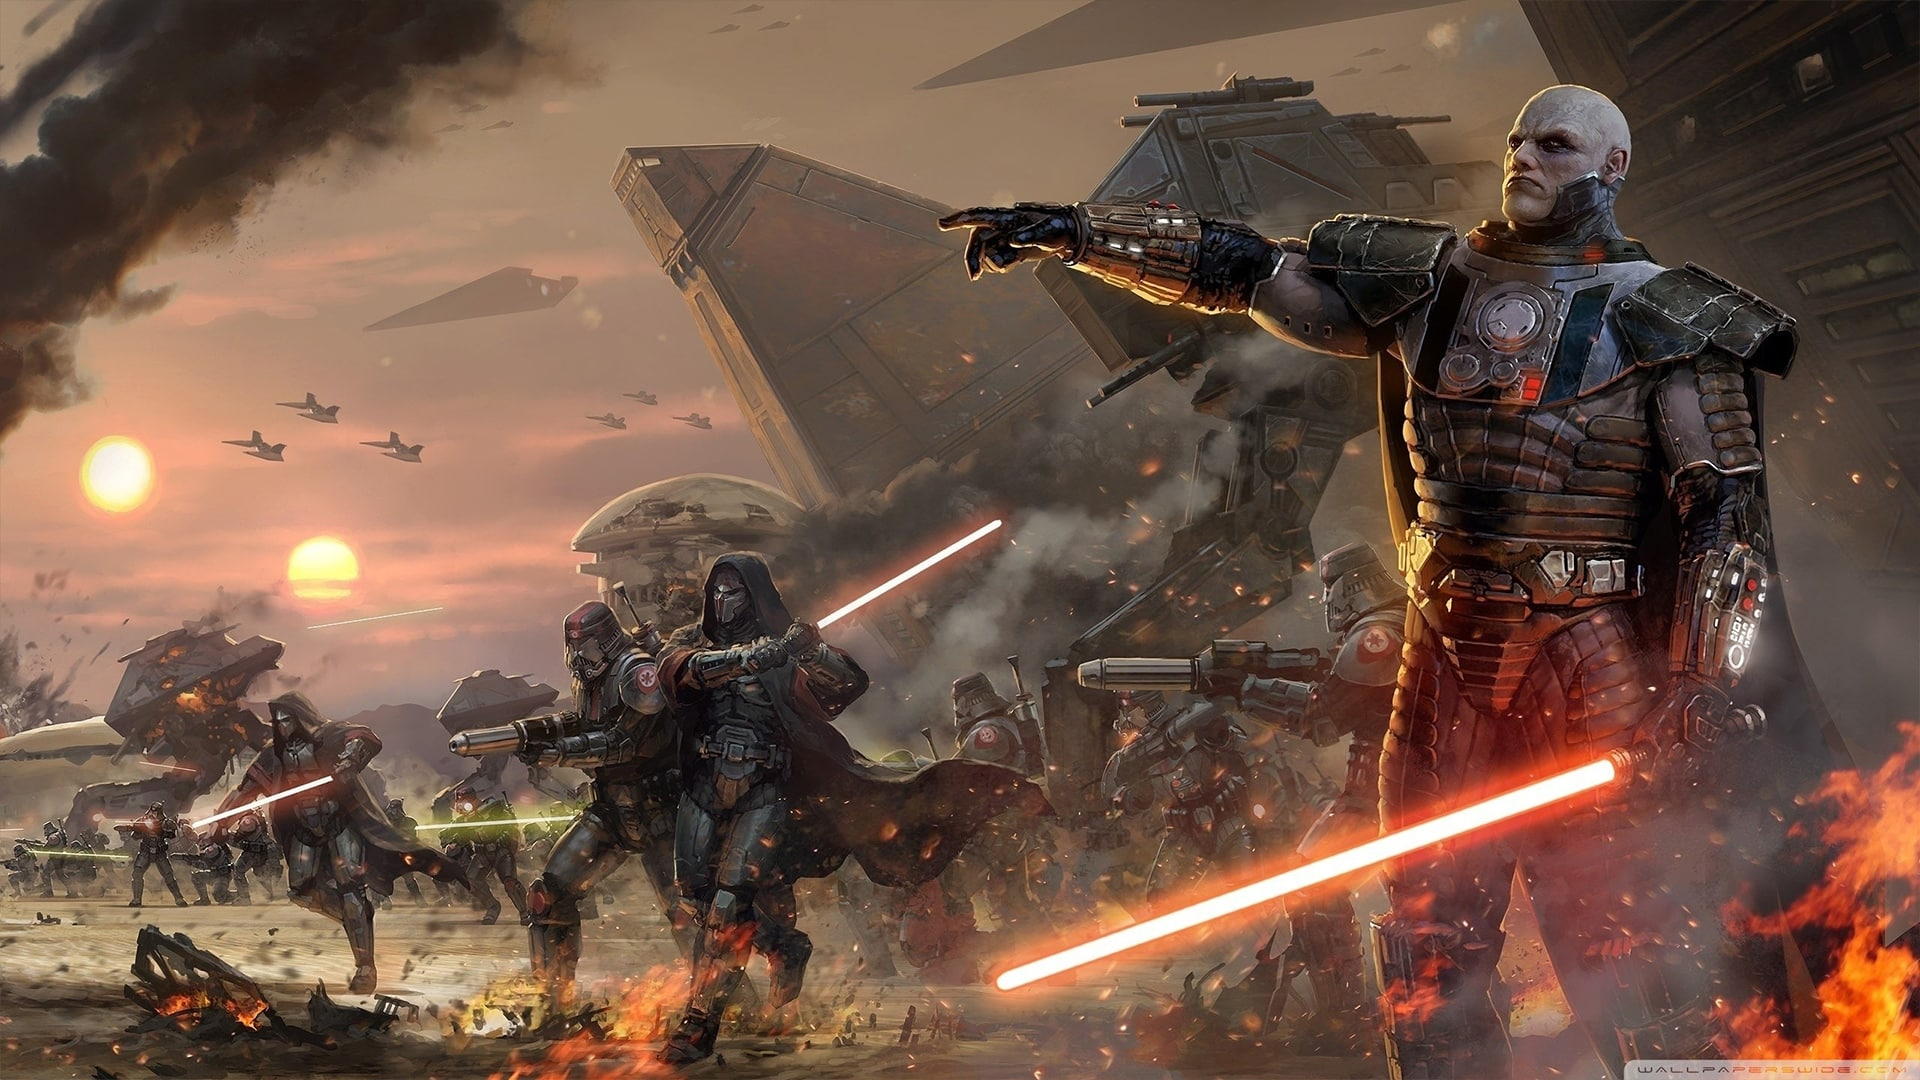 star-wars-the-old-republic-s-equiper-dans-l-extension-onslaught-swtor-guide-aide-astuce-2